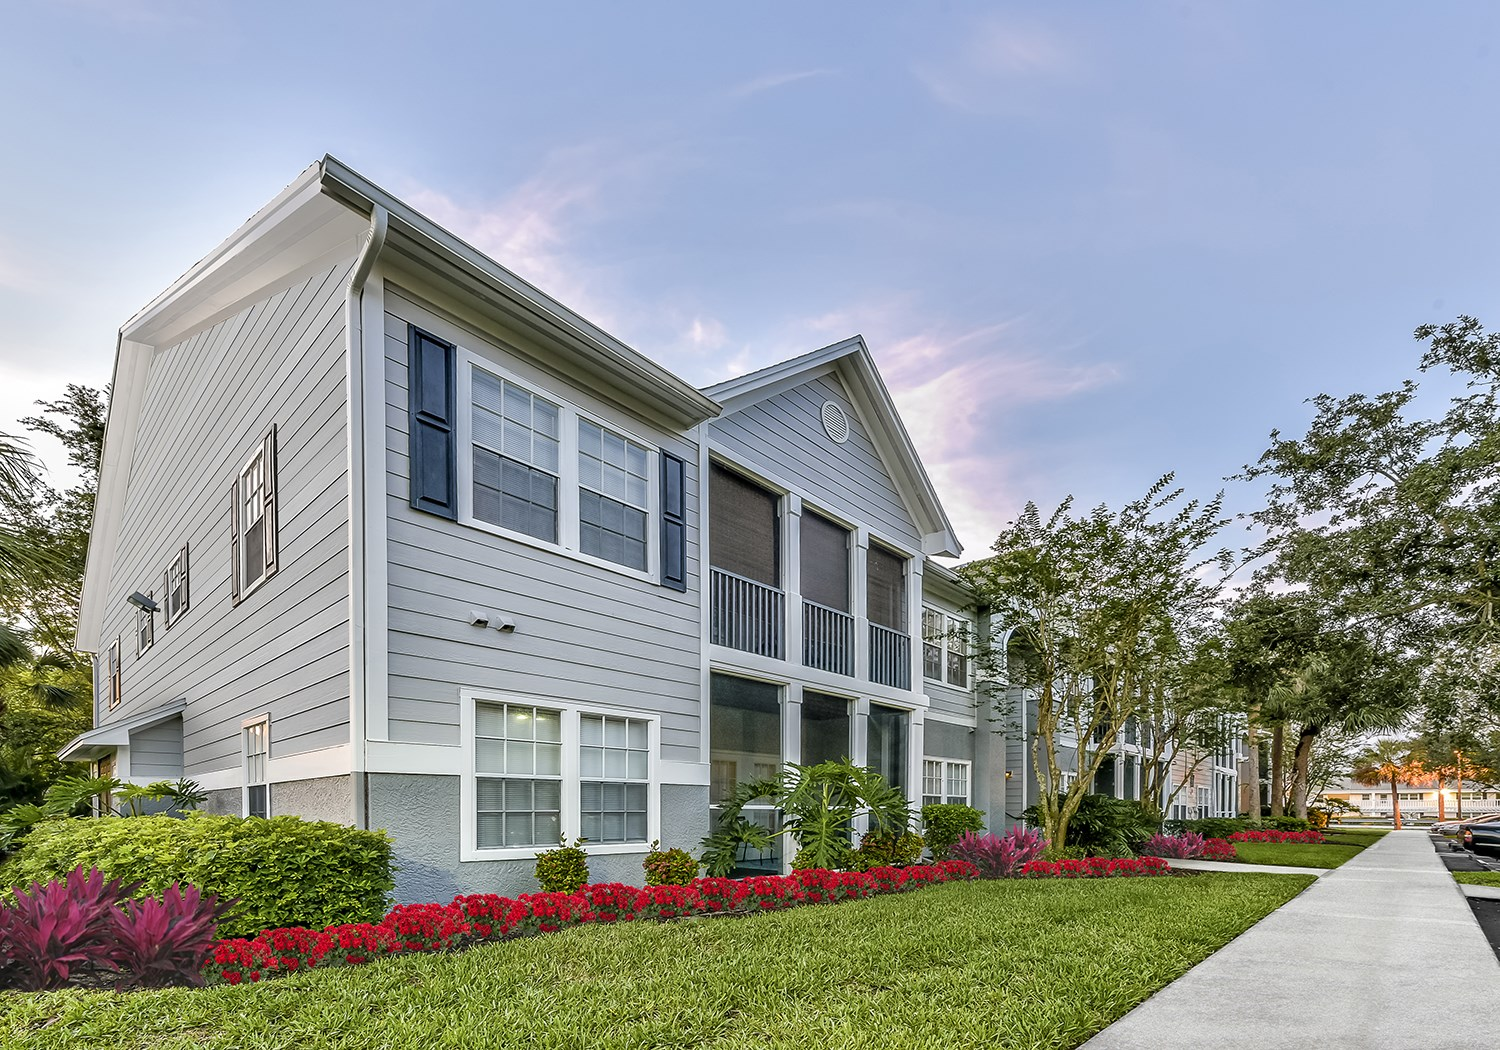 Exterior at Brantley Pines Apartments in Ft. Myers, FL